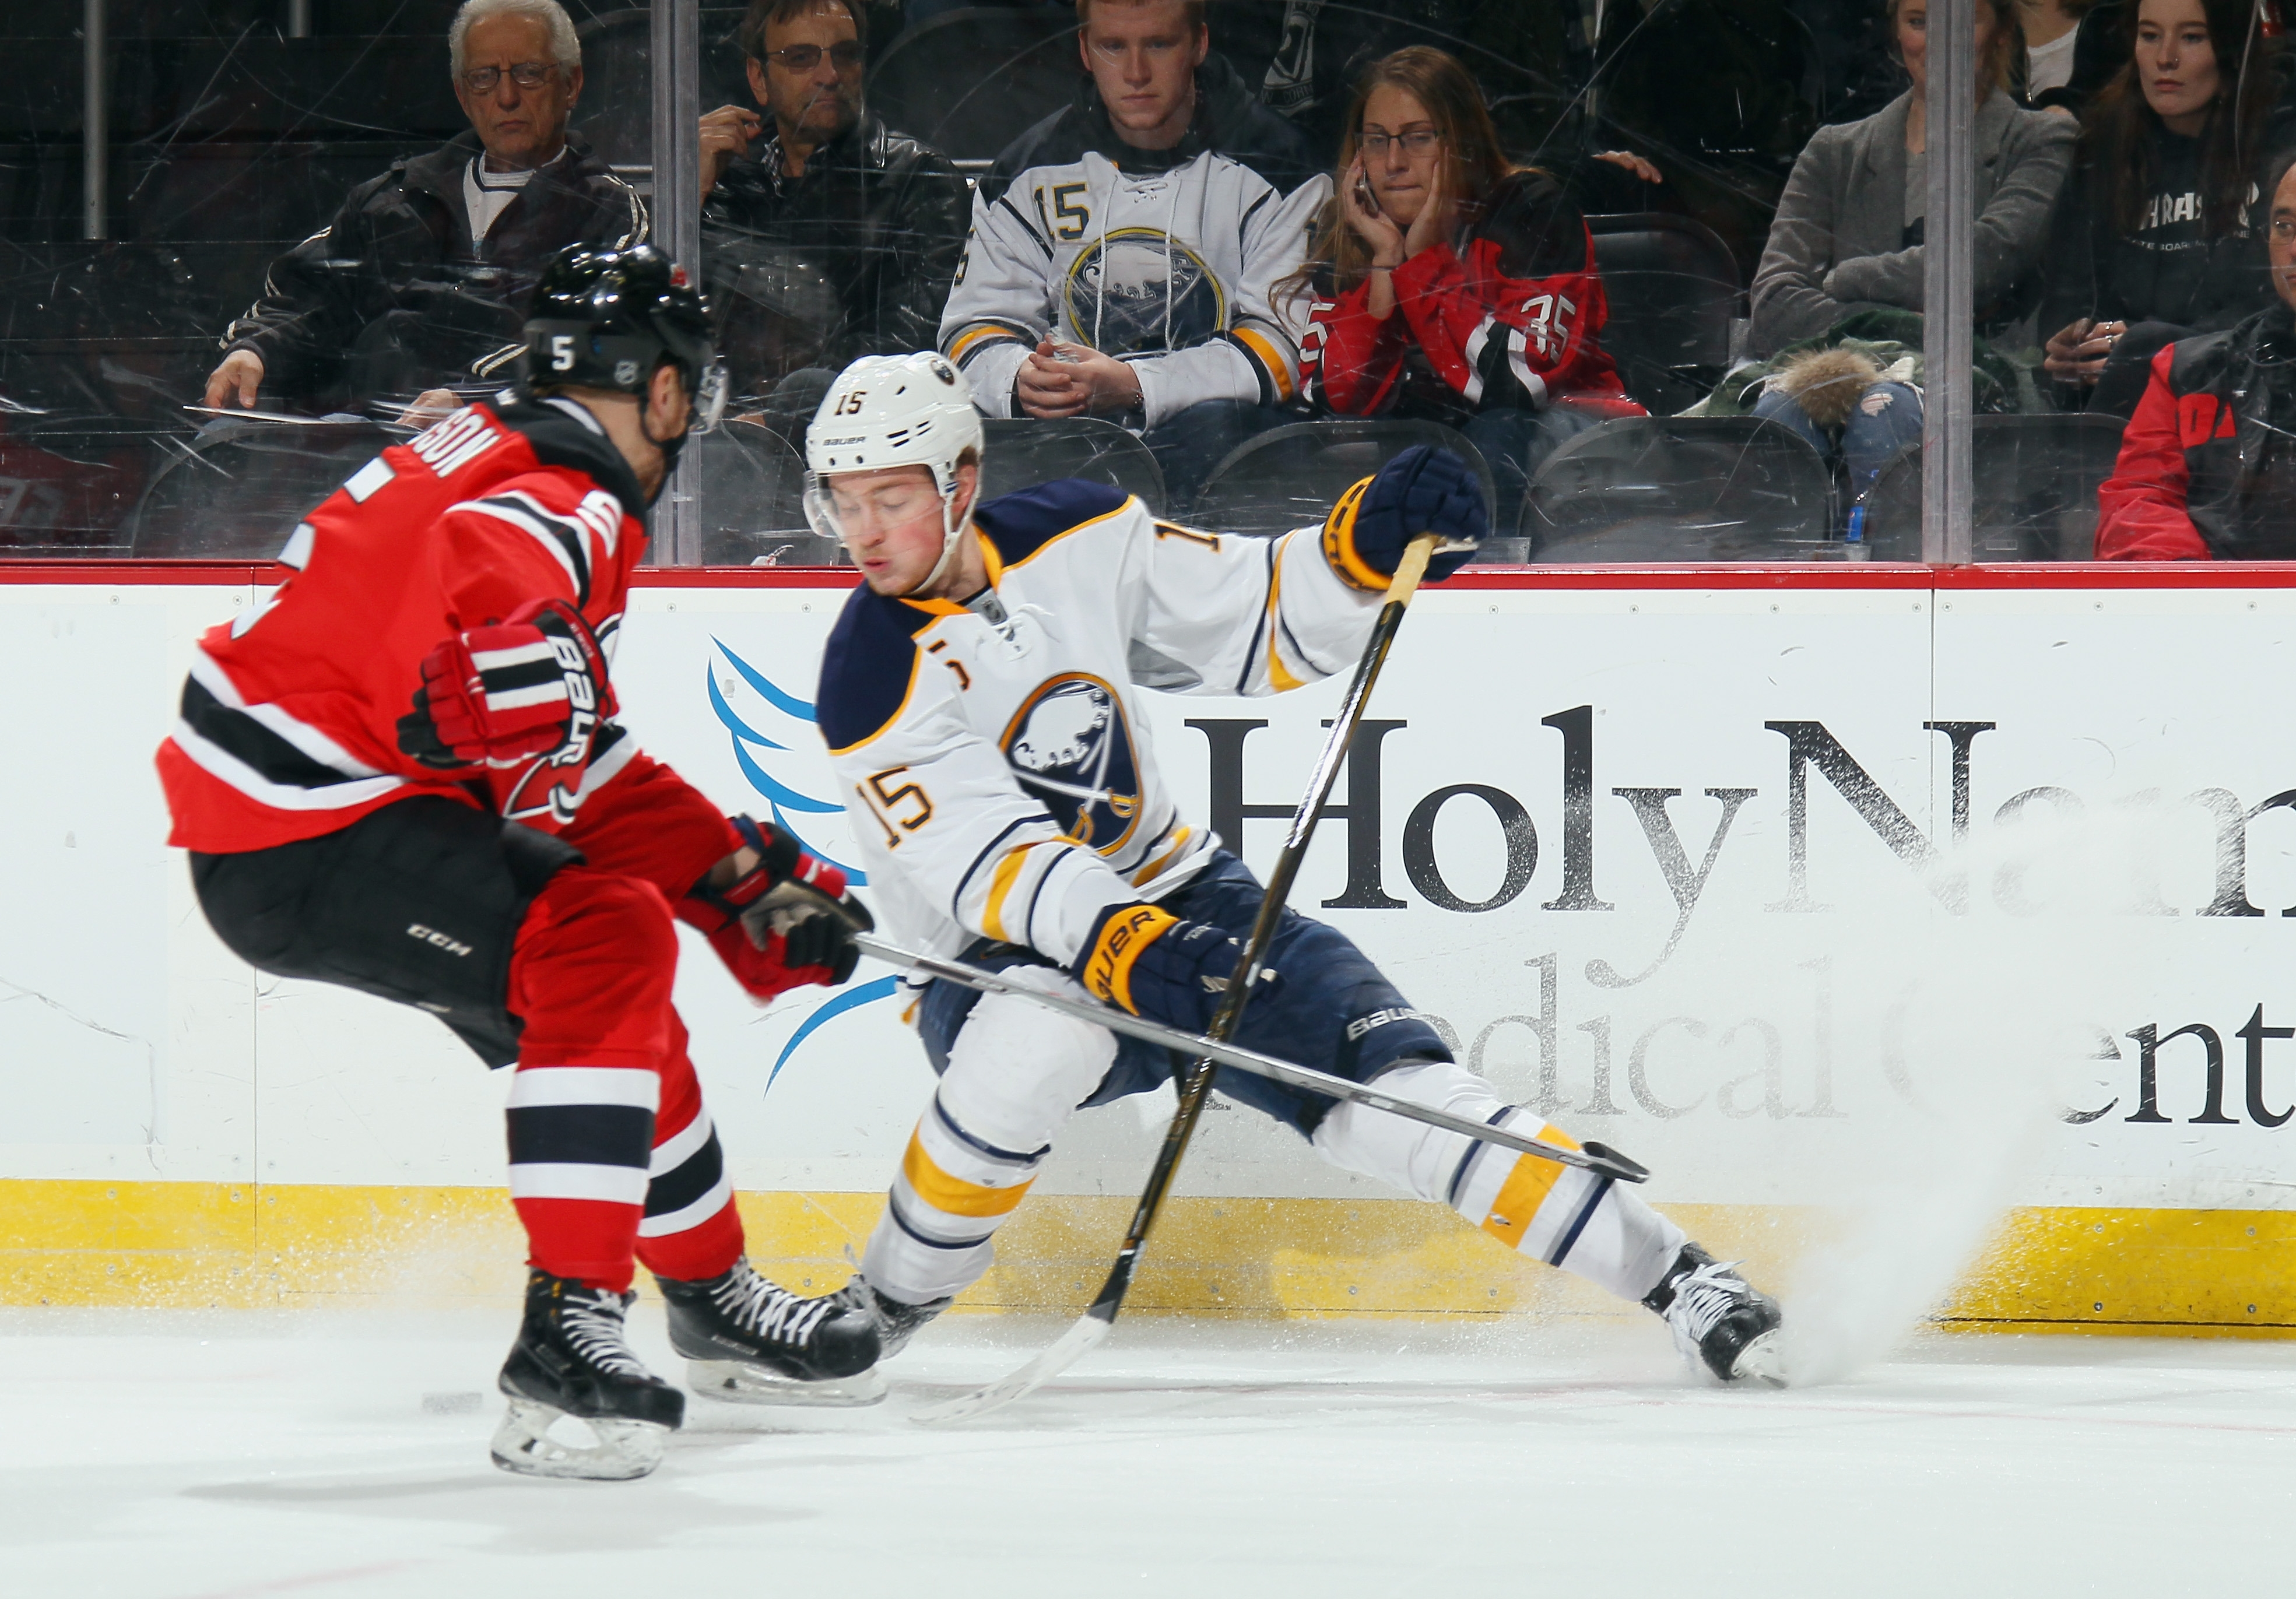 Jack Eichel fights for the puck with Adam Larsson of the Devils during the first period at the Prudential Center. Eichel had an empty-net goal in the game.